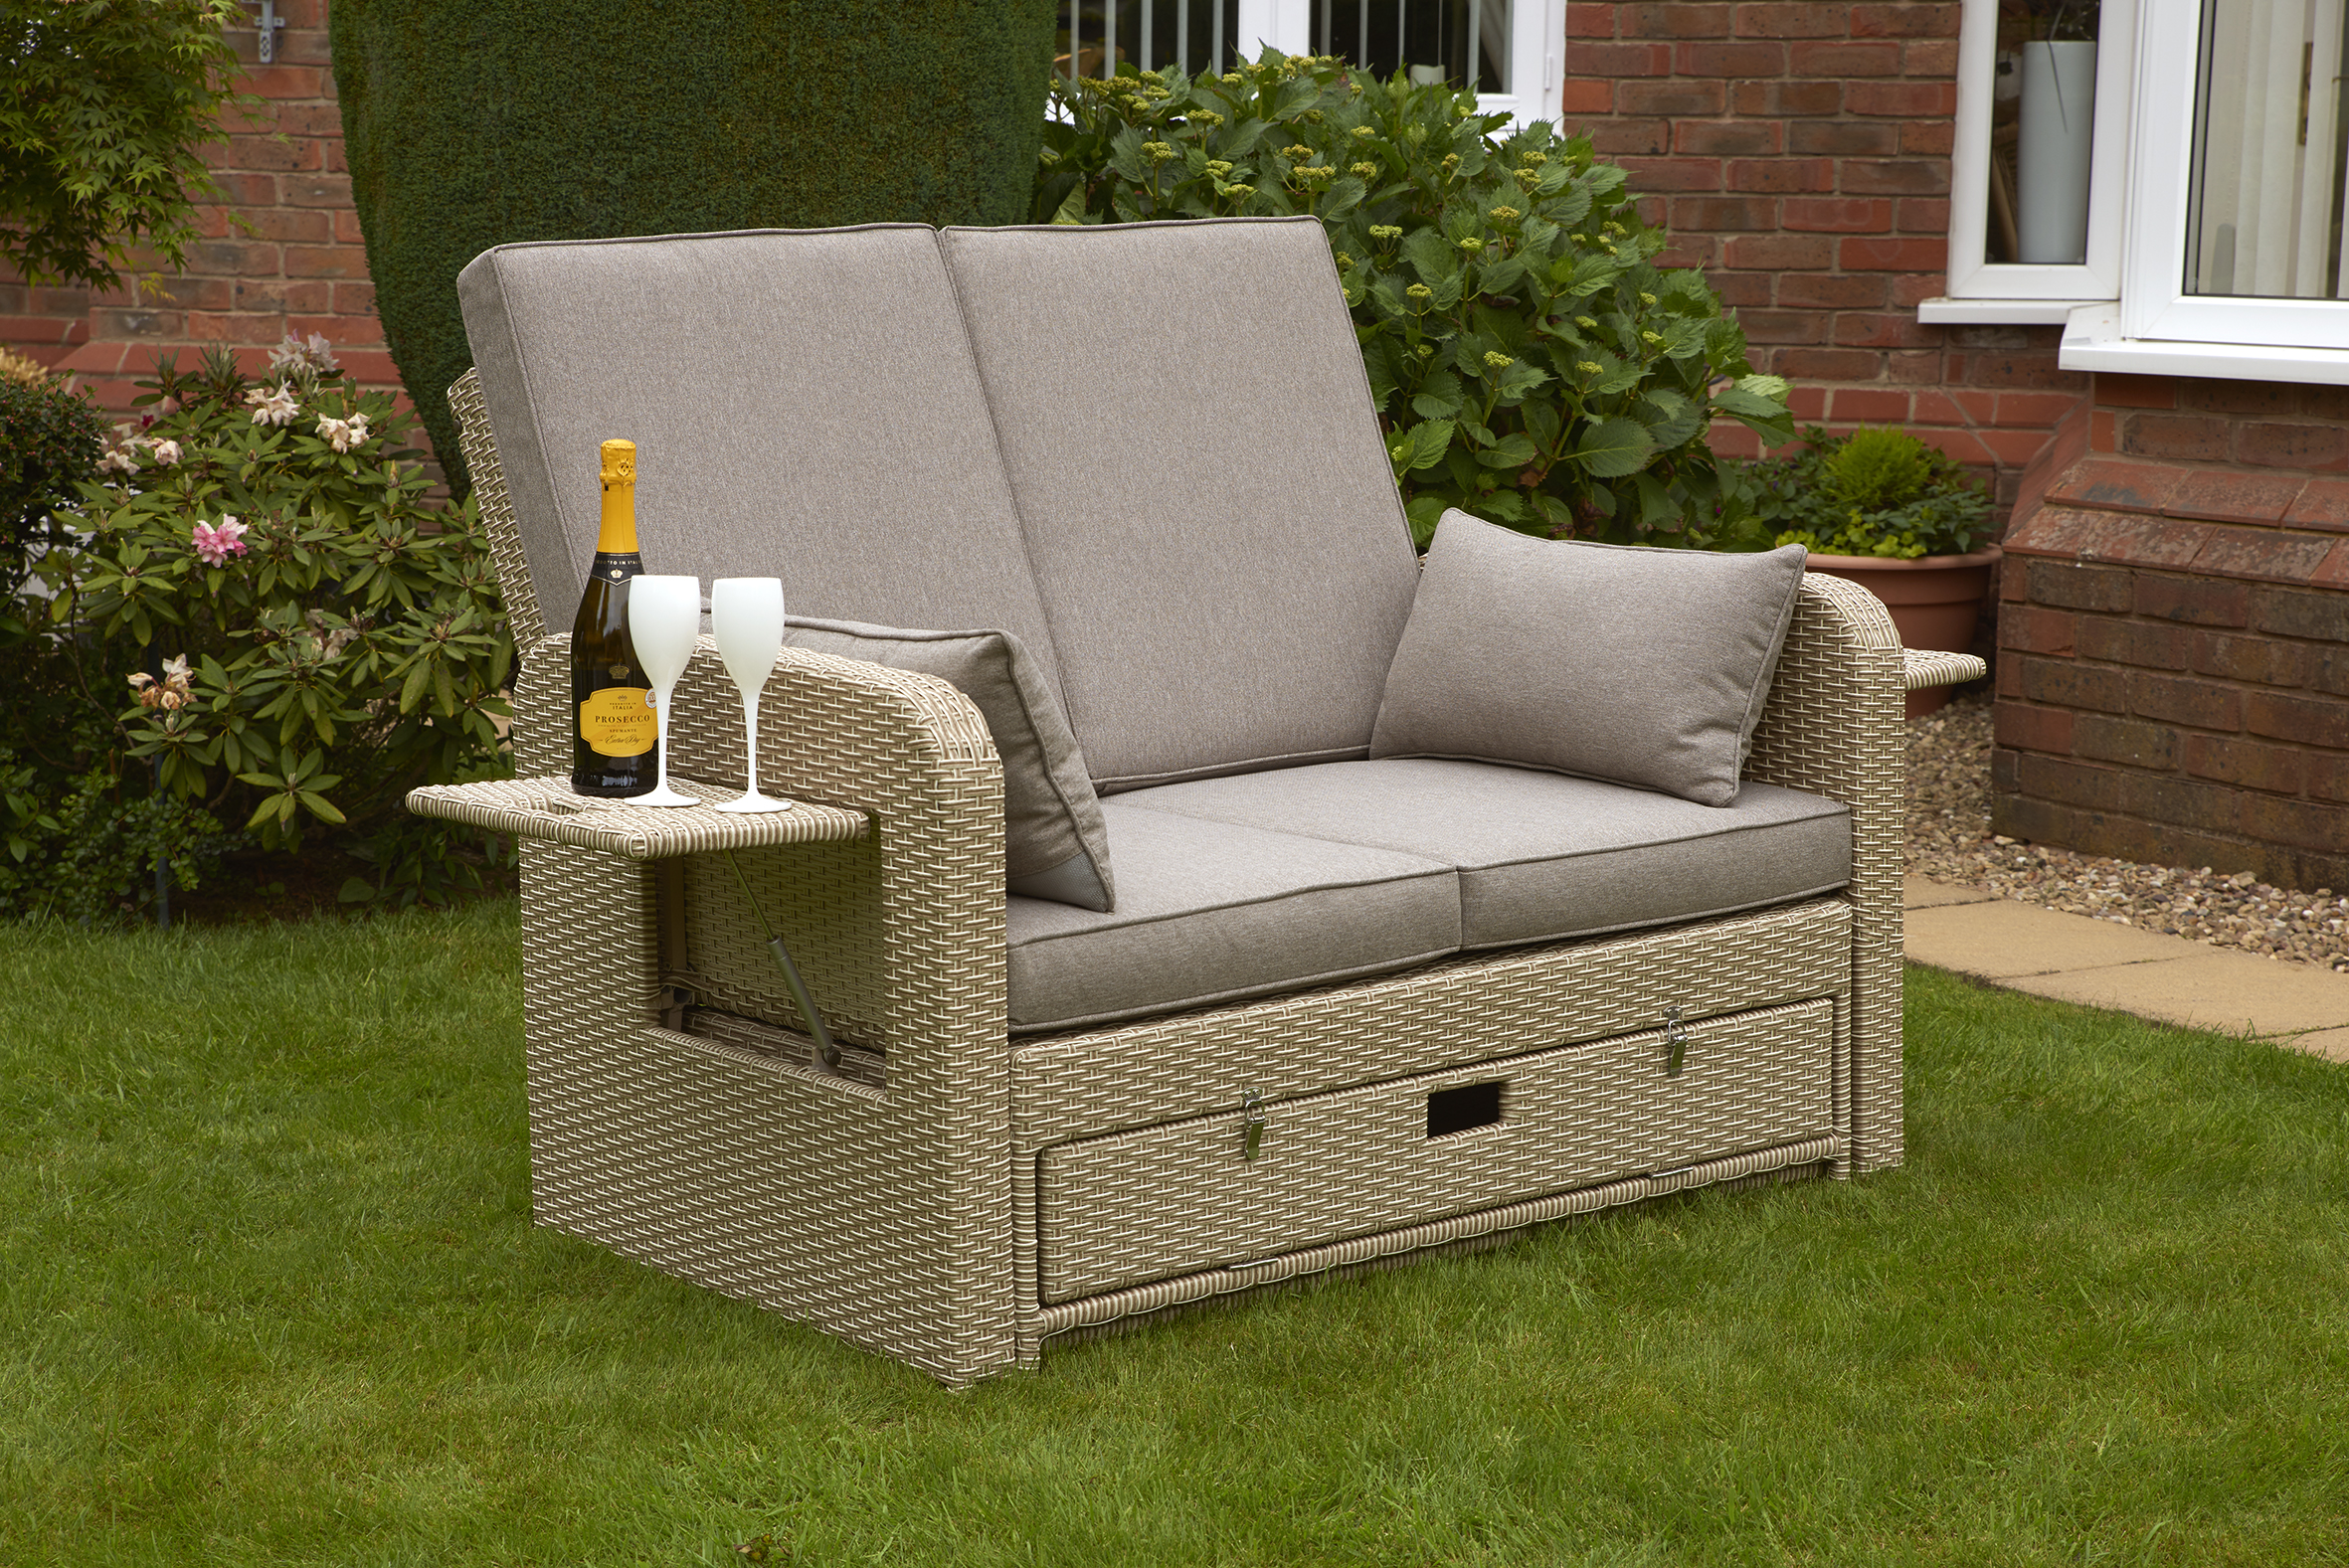 Glendale AMIENS SUNLOUNGER 1